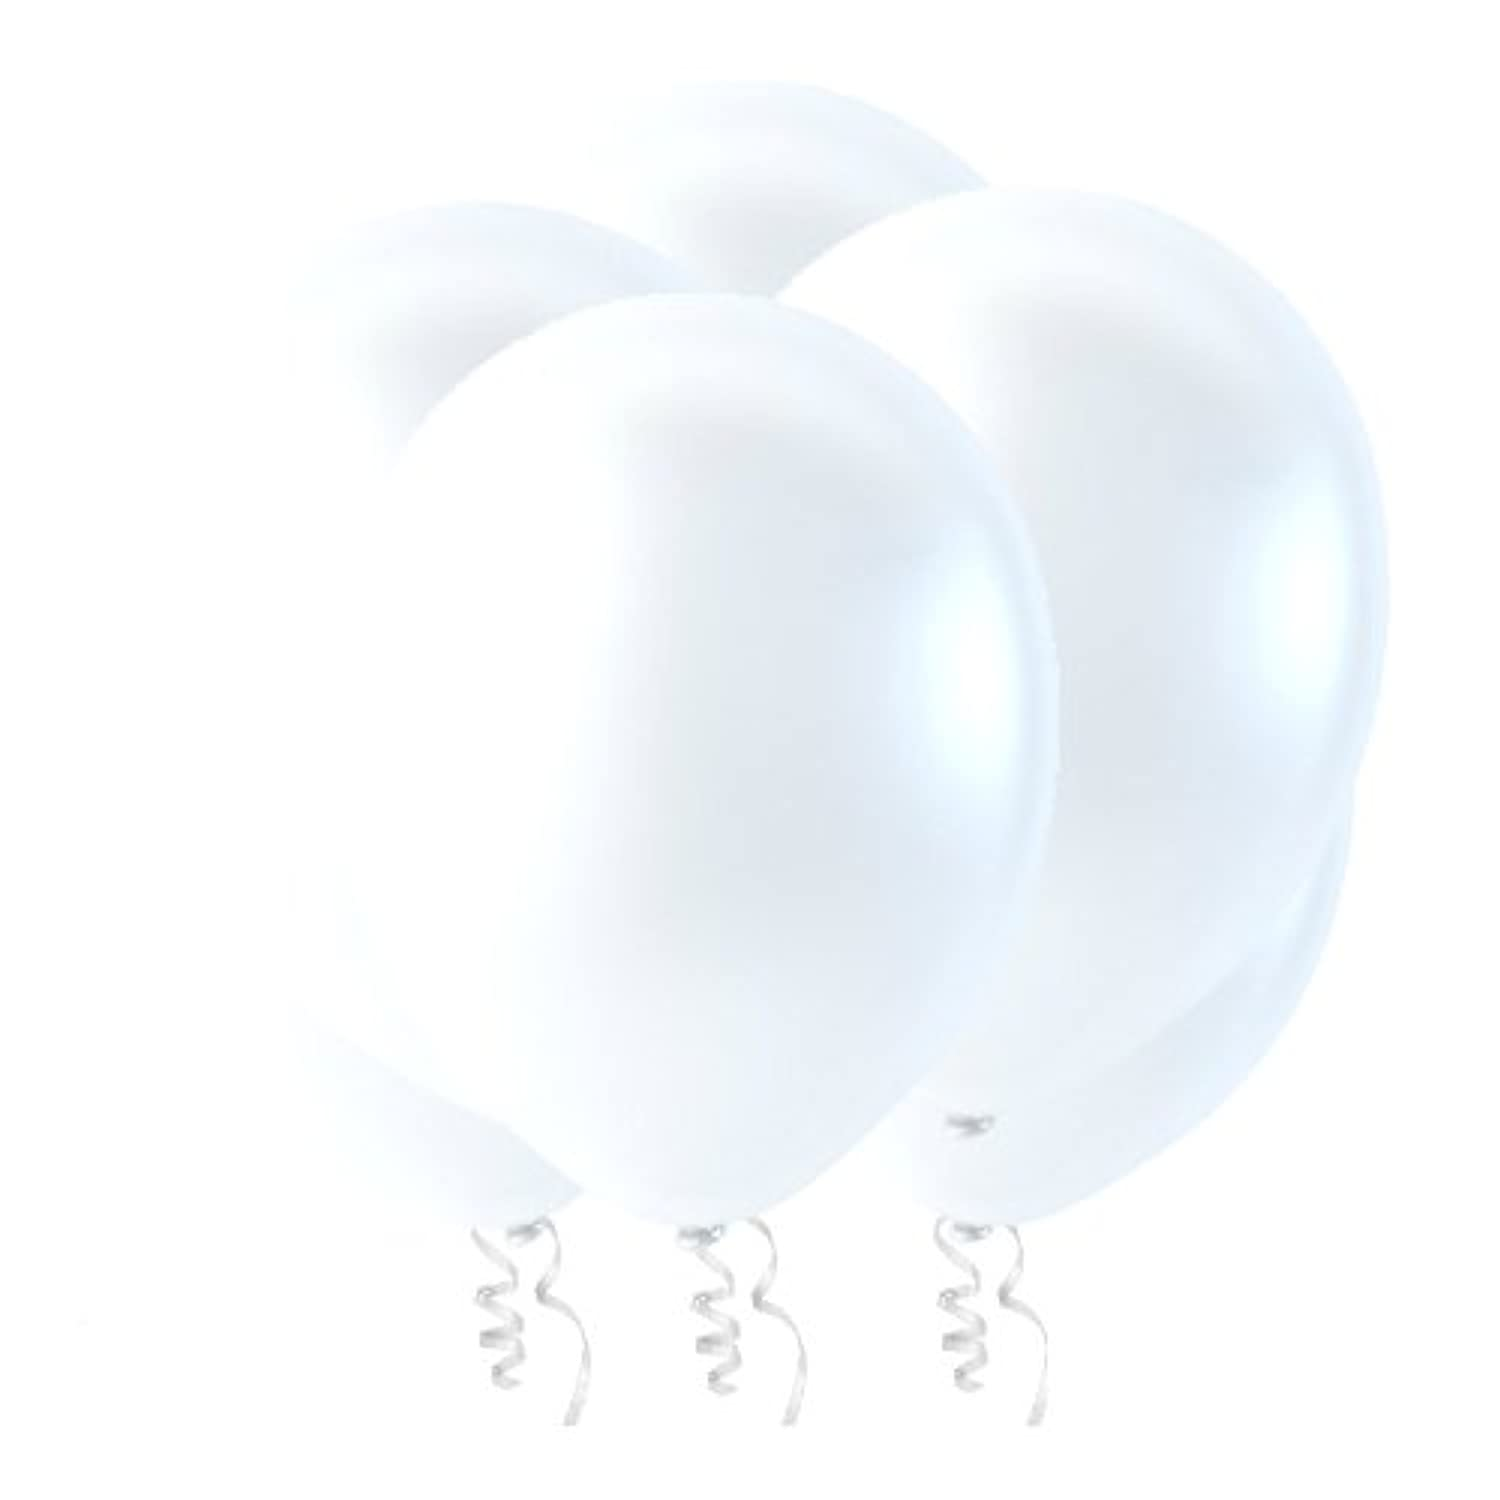 Creative Balloons 30cm Latex Balloons - Pack of 144 Piece - Decorator Snow White